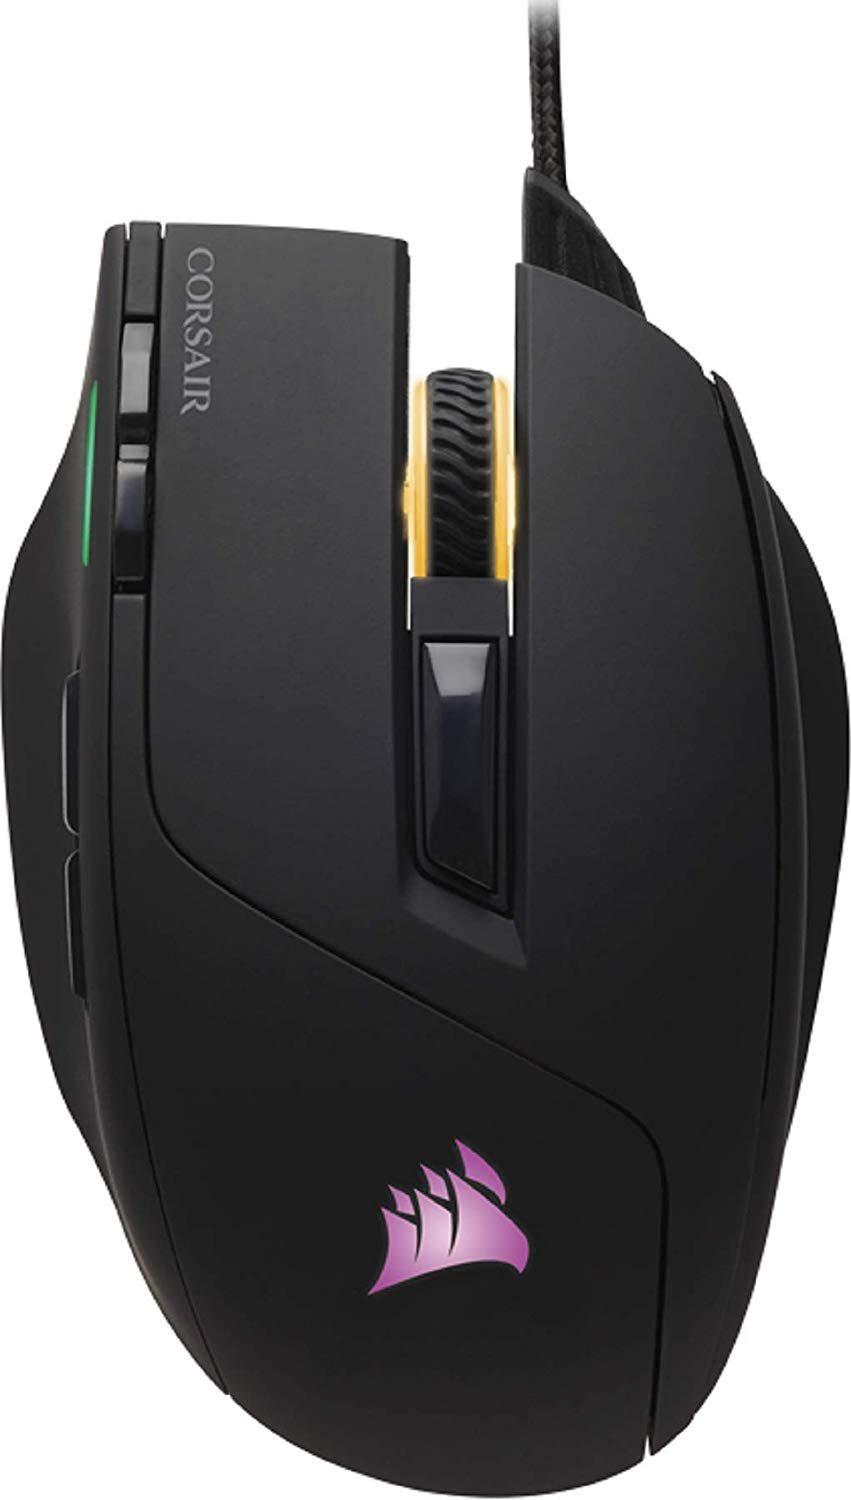 Corsair Sabre RGB, Optical Gaming Mouse (10000 DPI Optical Sensor, Lightweight, RGB Multi-Colour Backlighting)